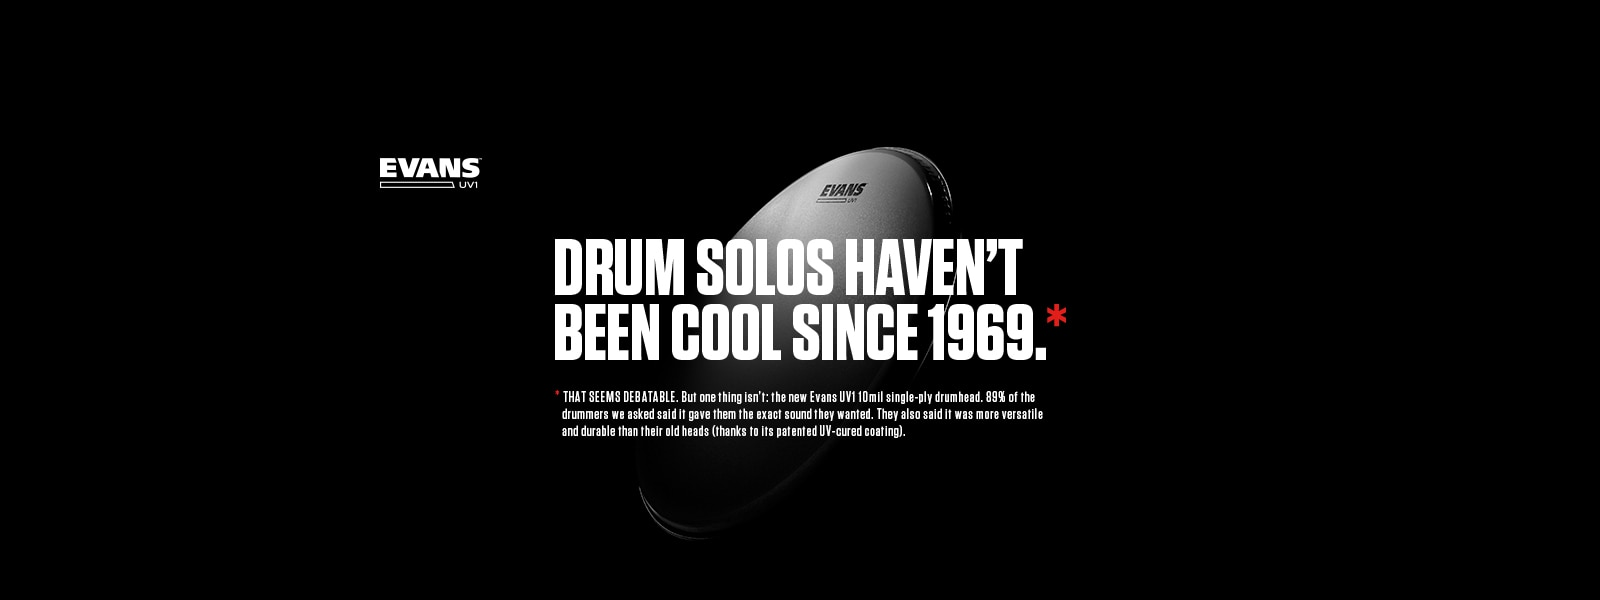 Drum solos have not been cool since 1989